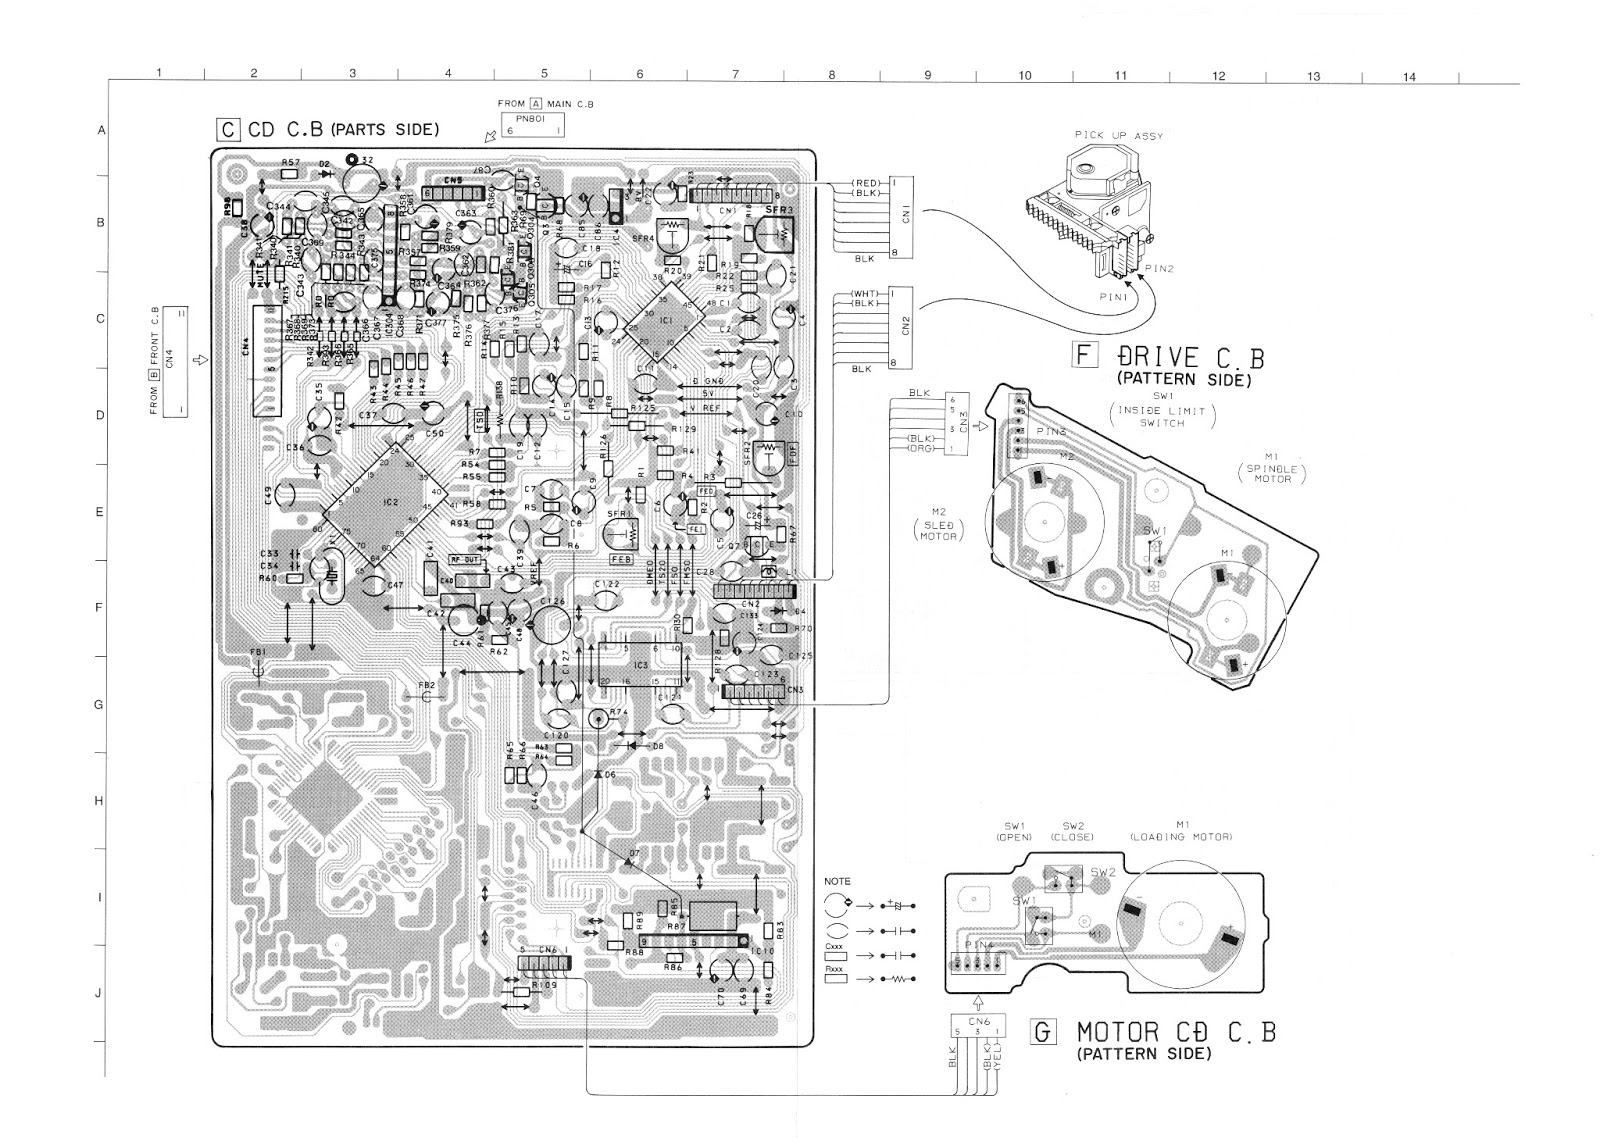 wiring diagram further 1997 chevy 1500 wiring diagram on wiring